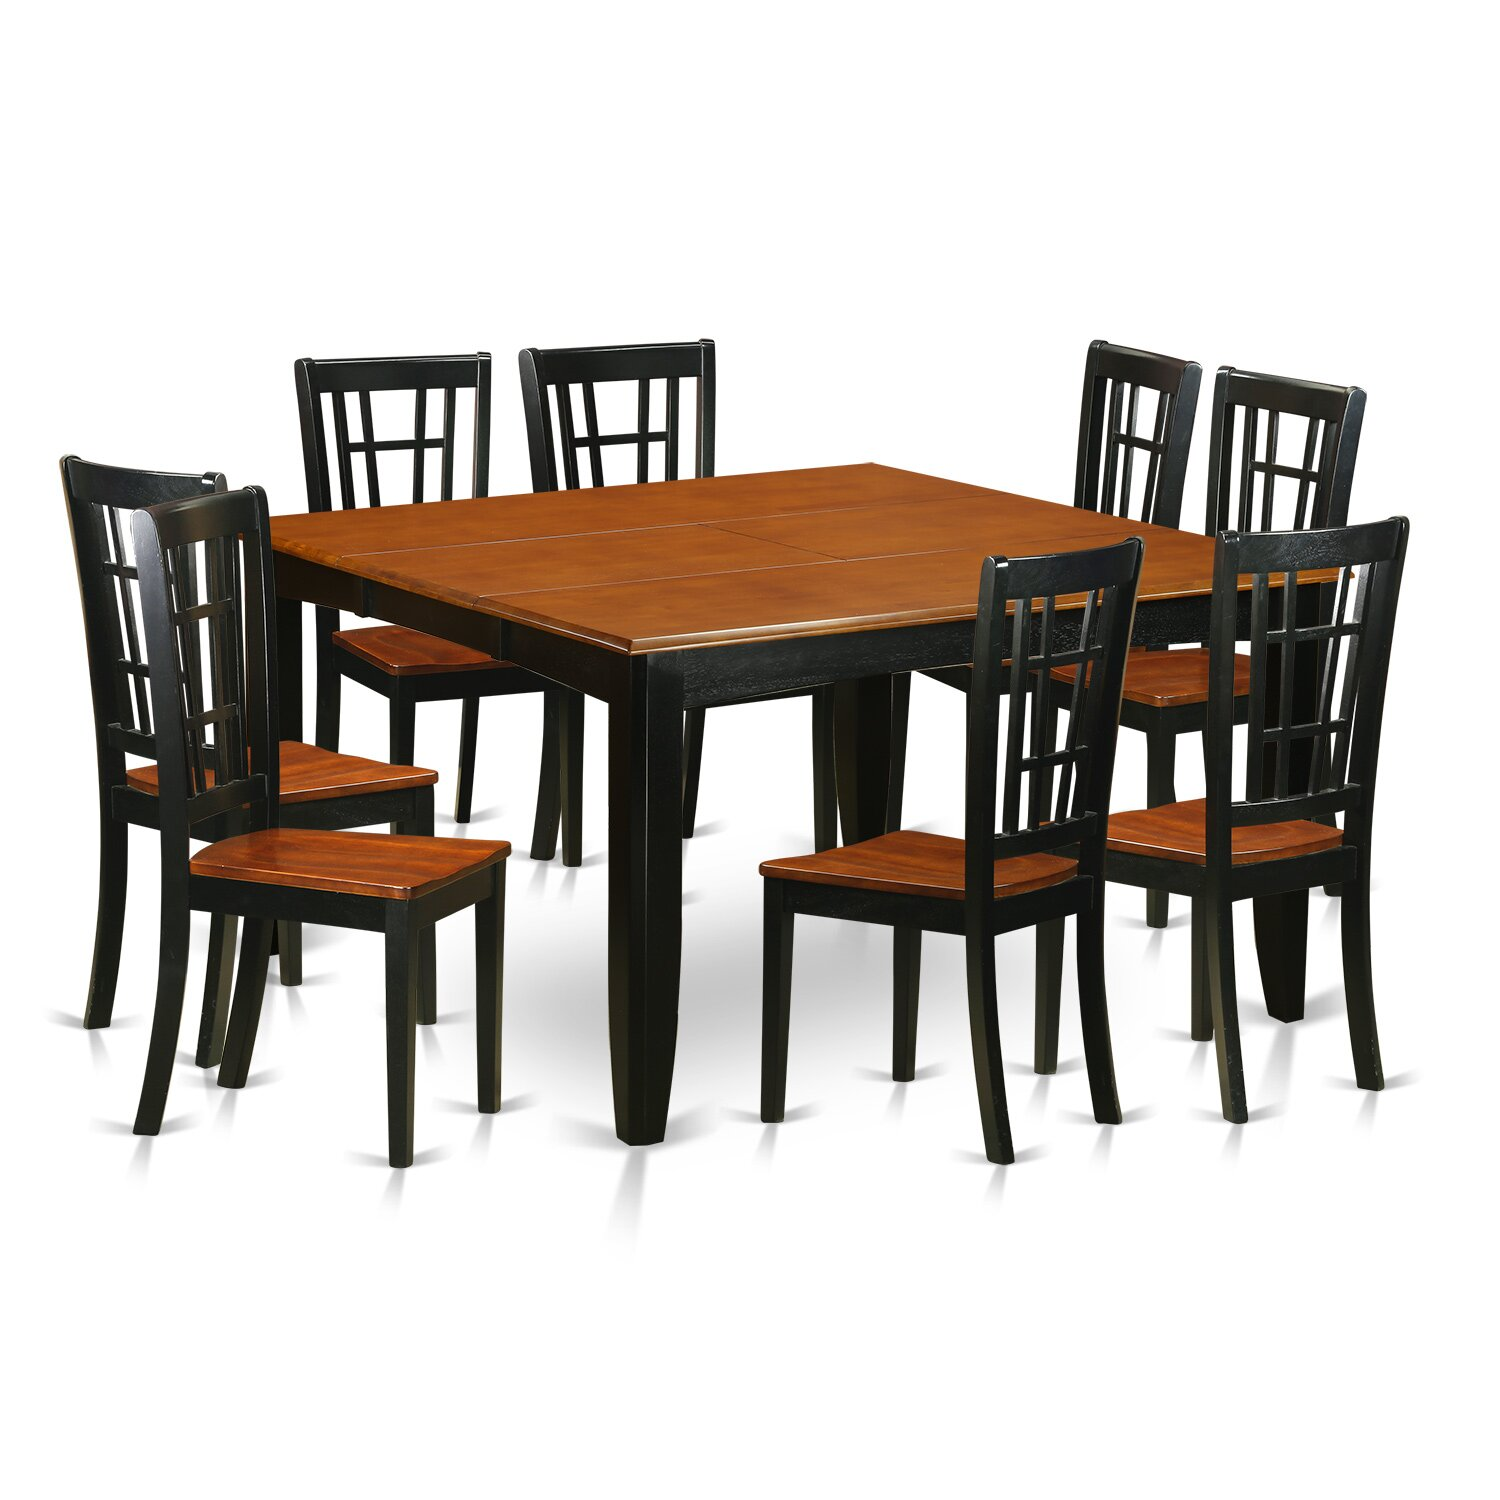 East west parfait 9 piece dining set wayfair for Solid wood dining table sets